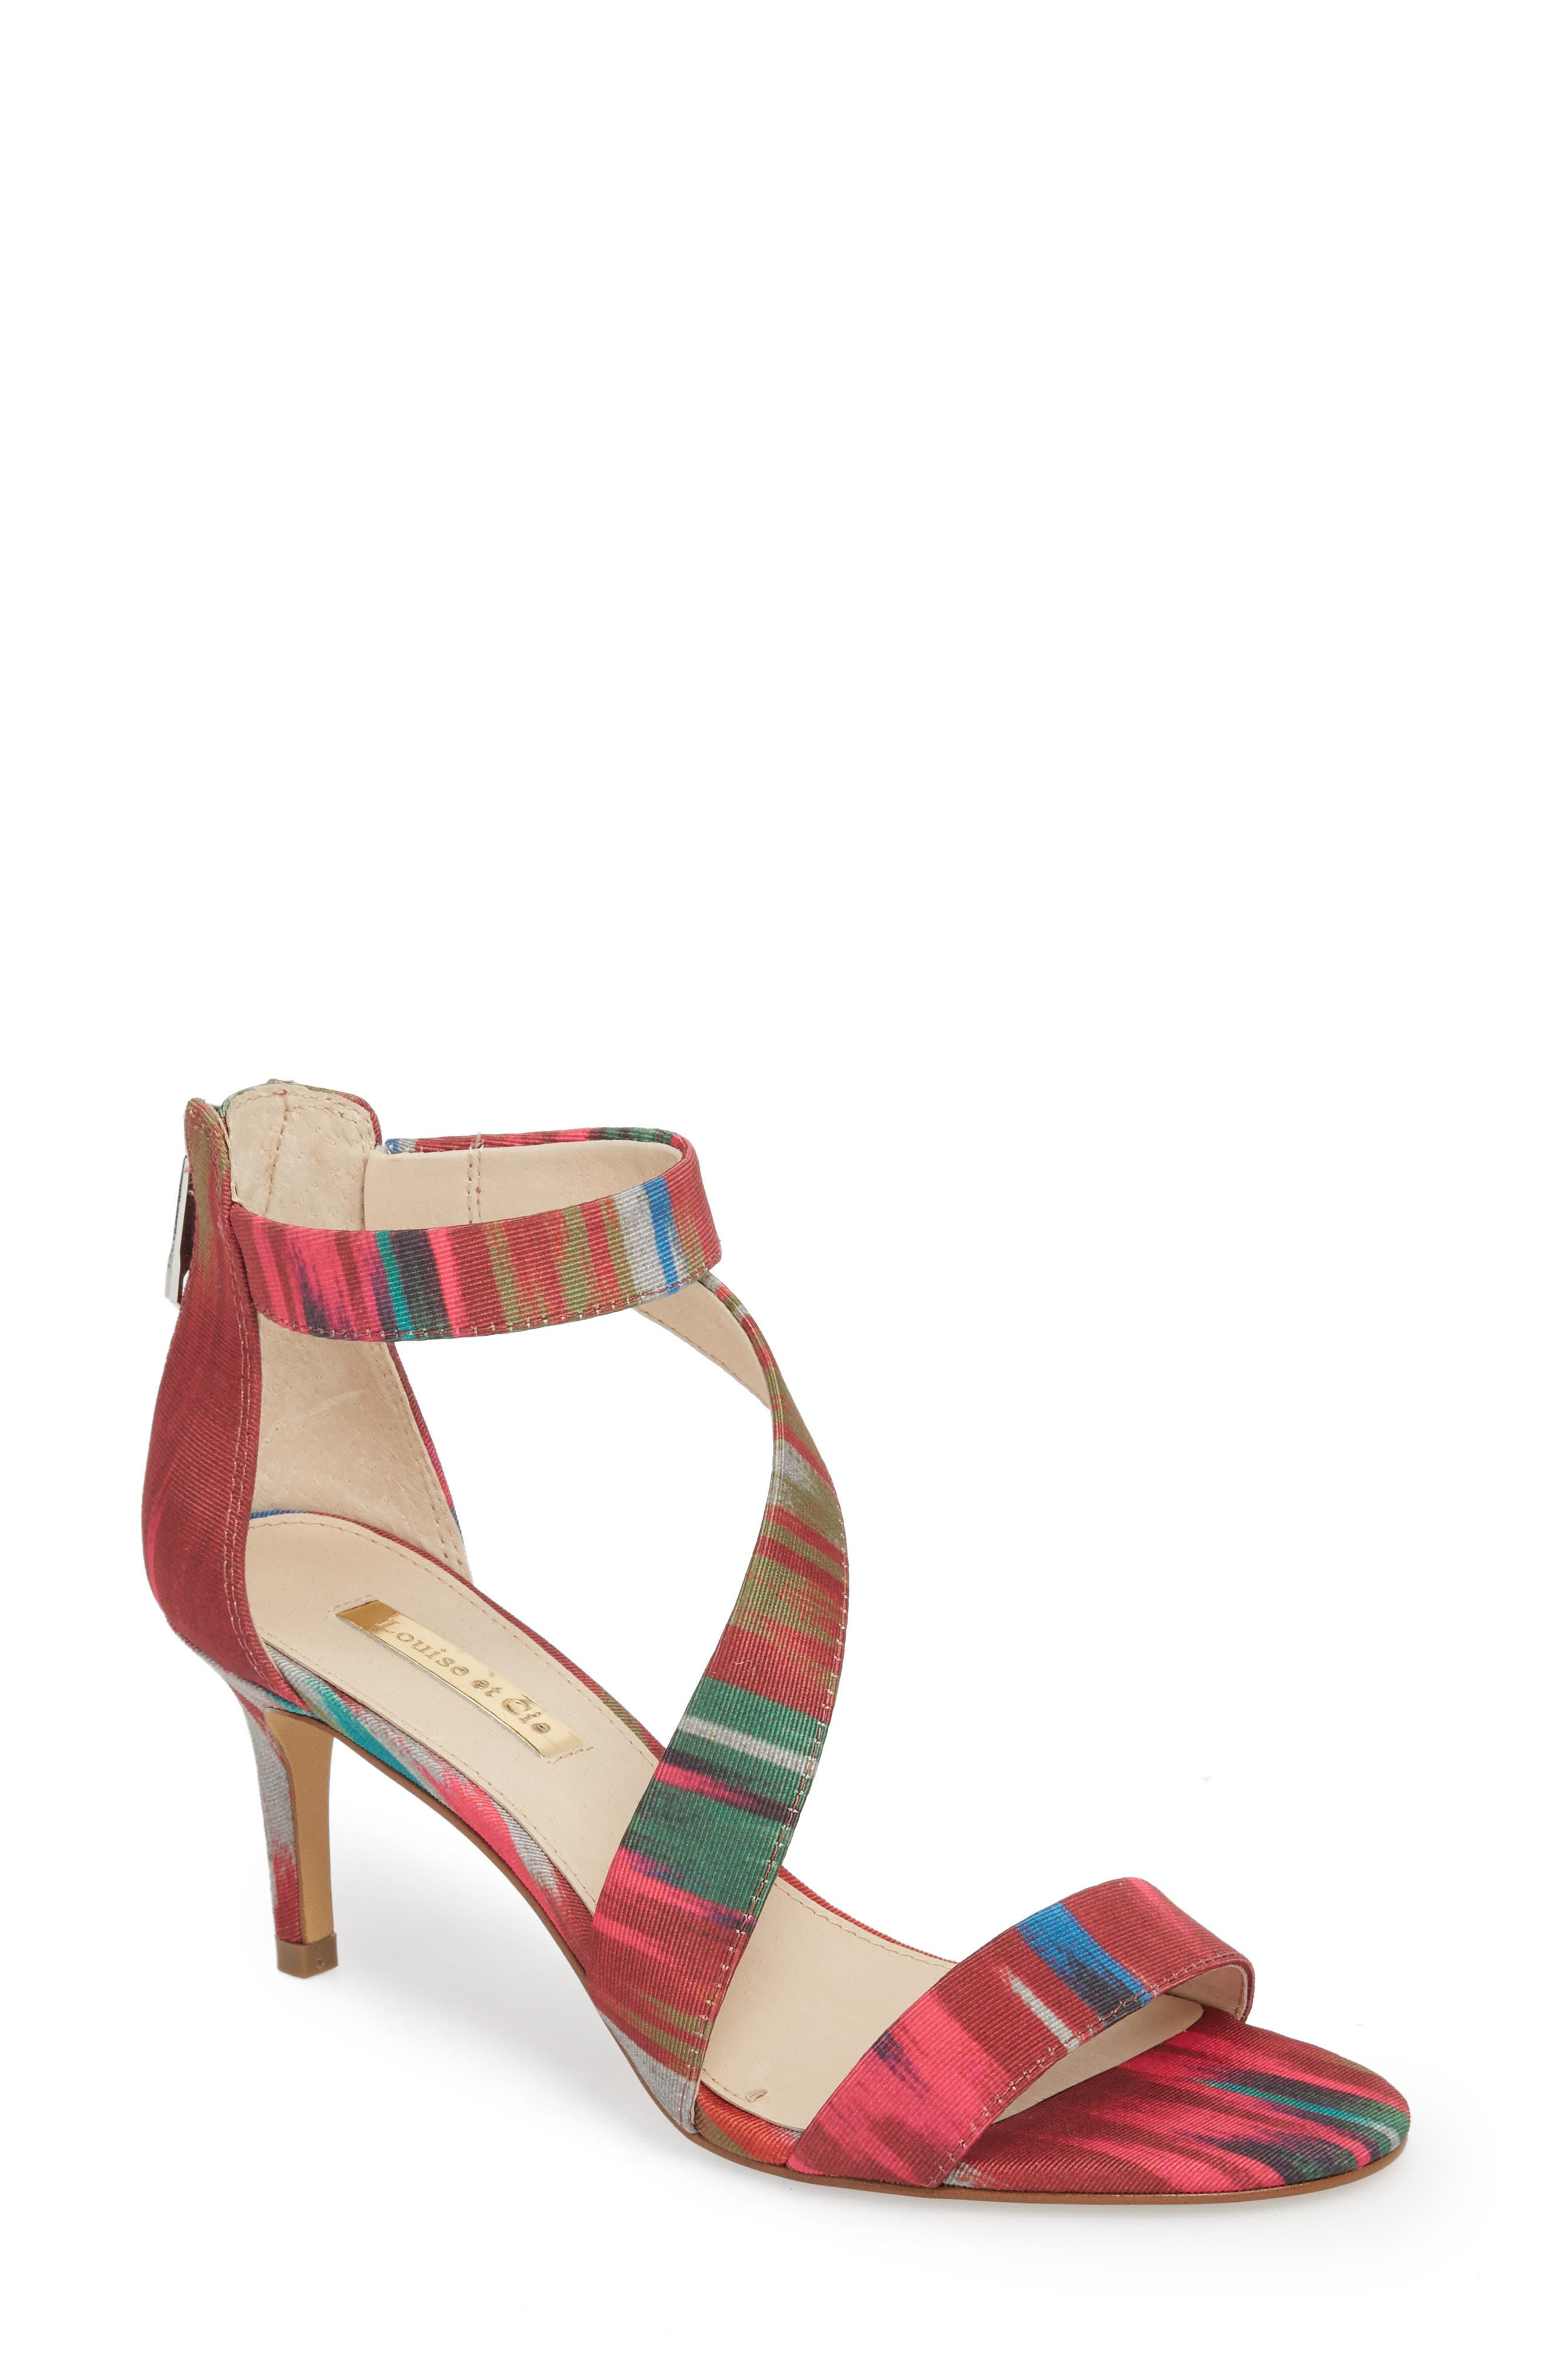 Image of Louise et Cie Hilio Strappy Sandal